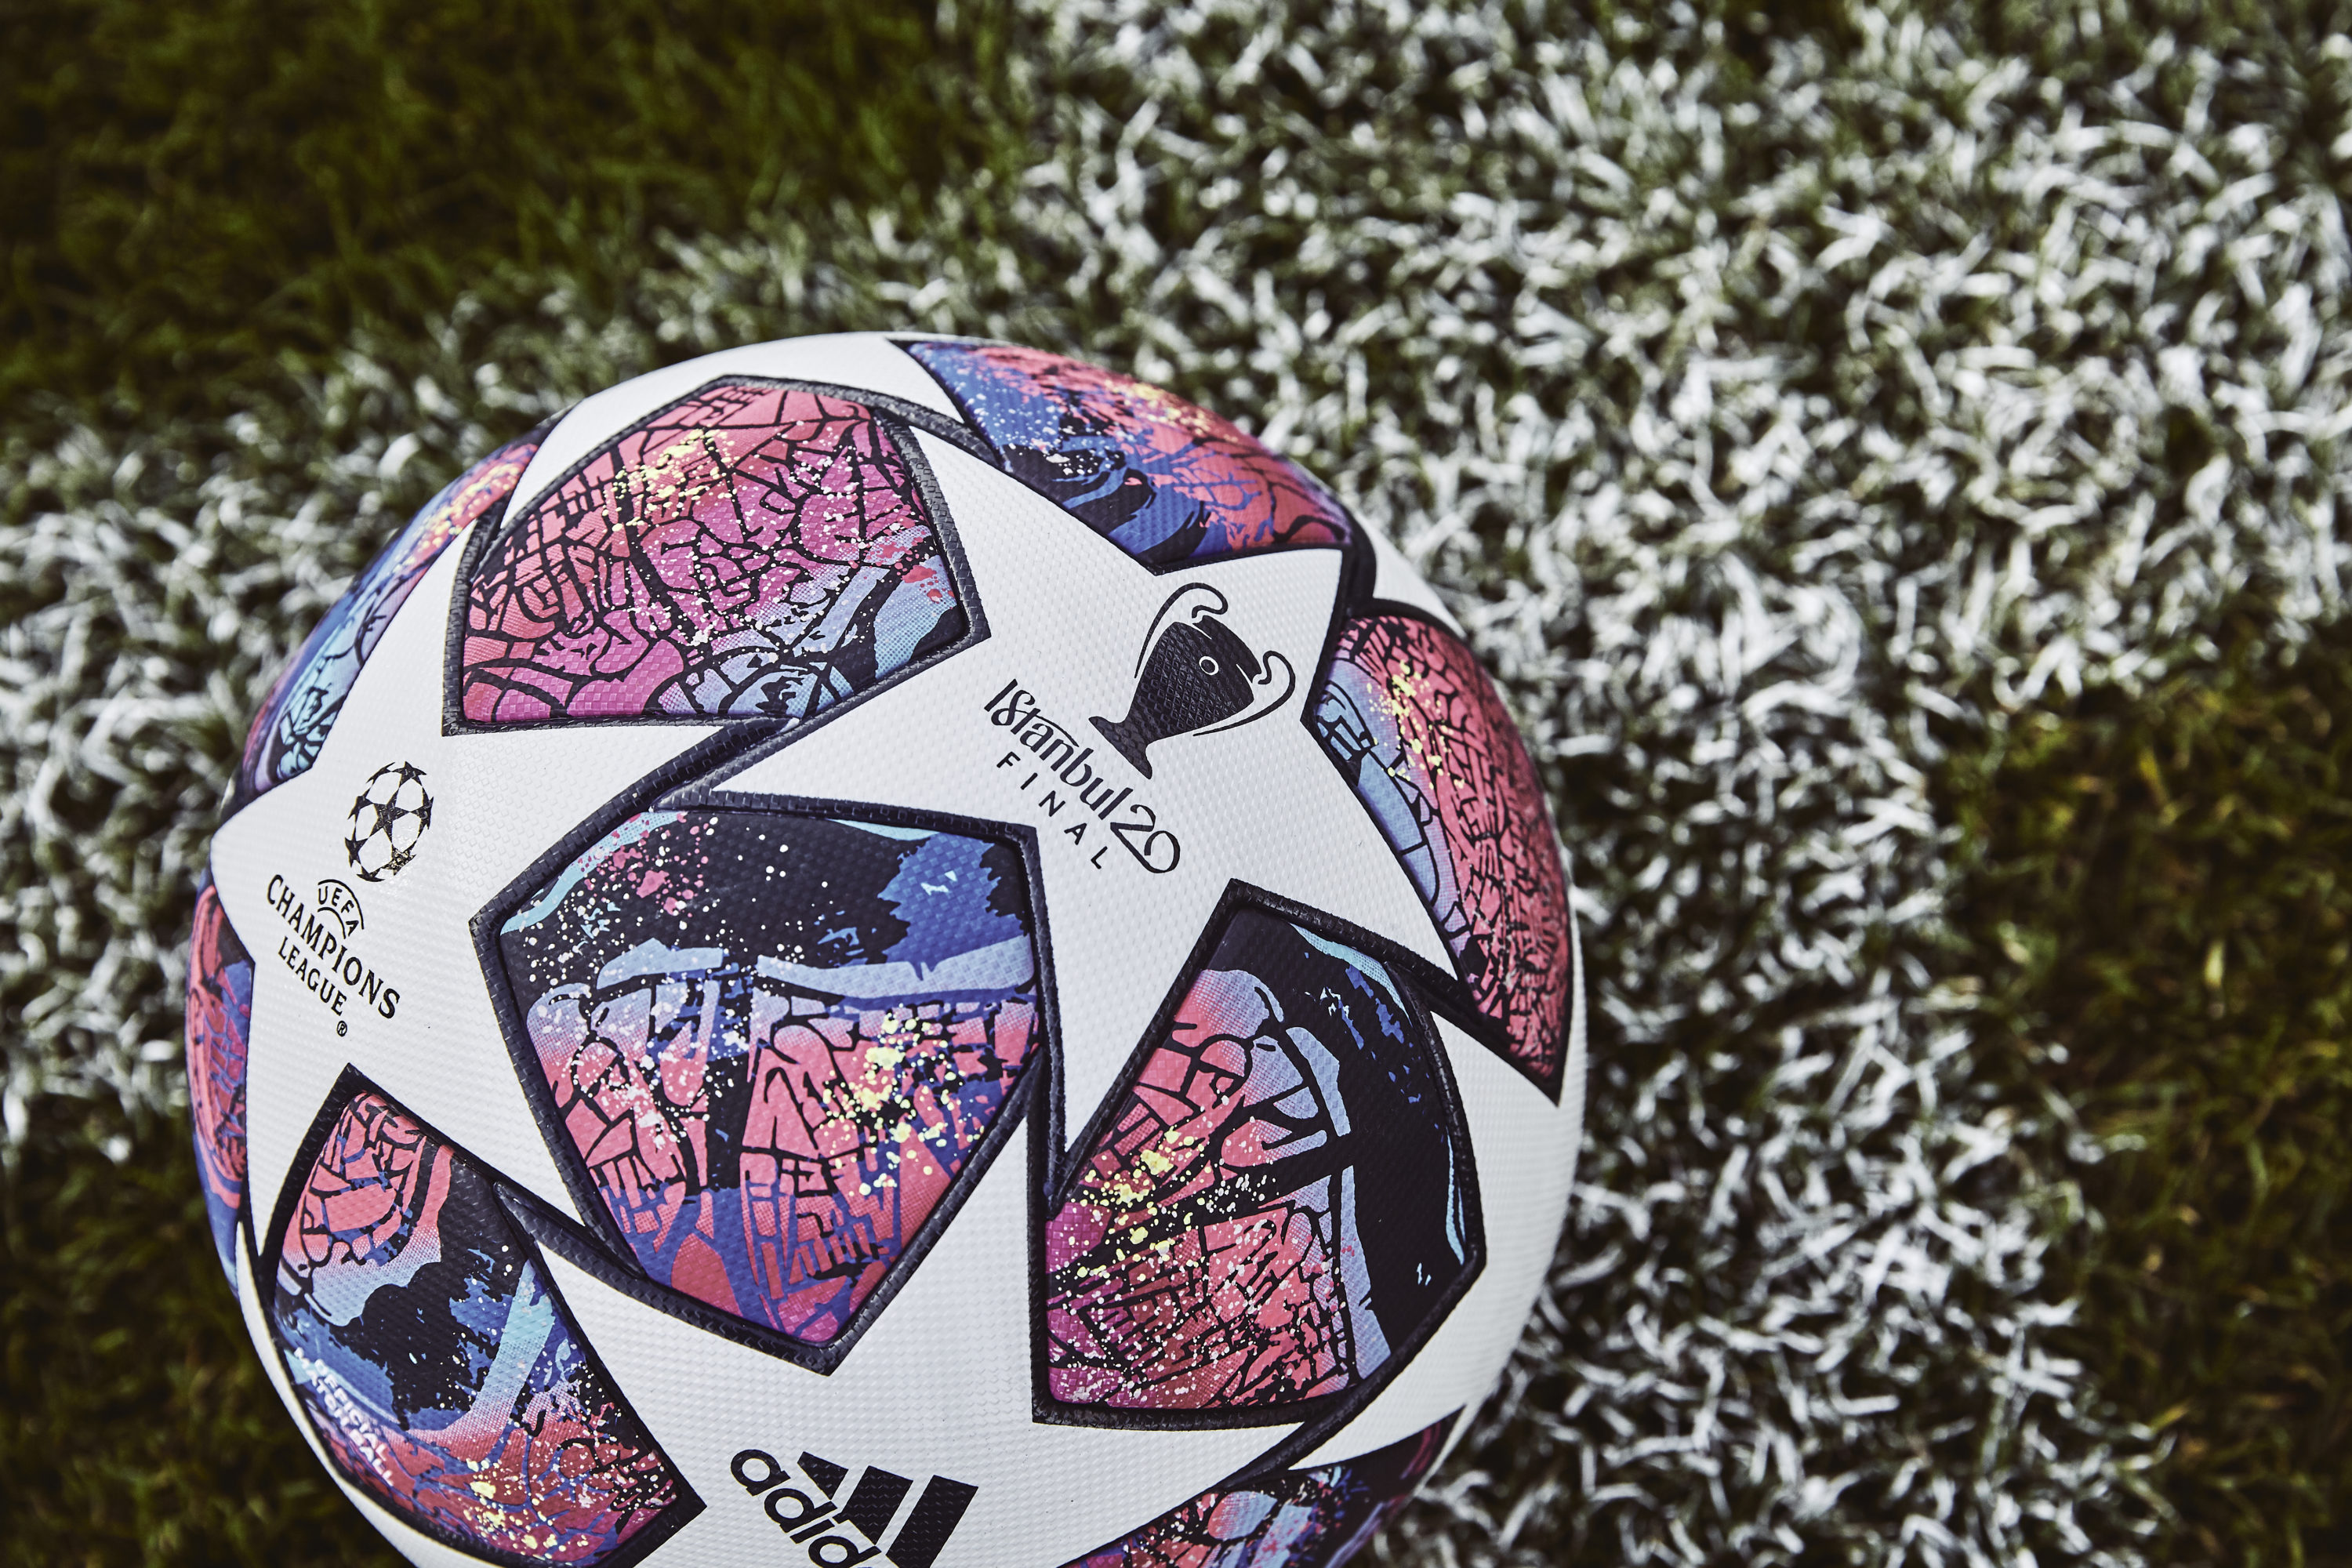 adidas reveals official match ball for uefa champions league 2020 knockout stages uefa champions league 2020 knockout stages